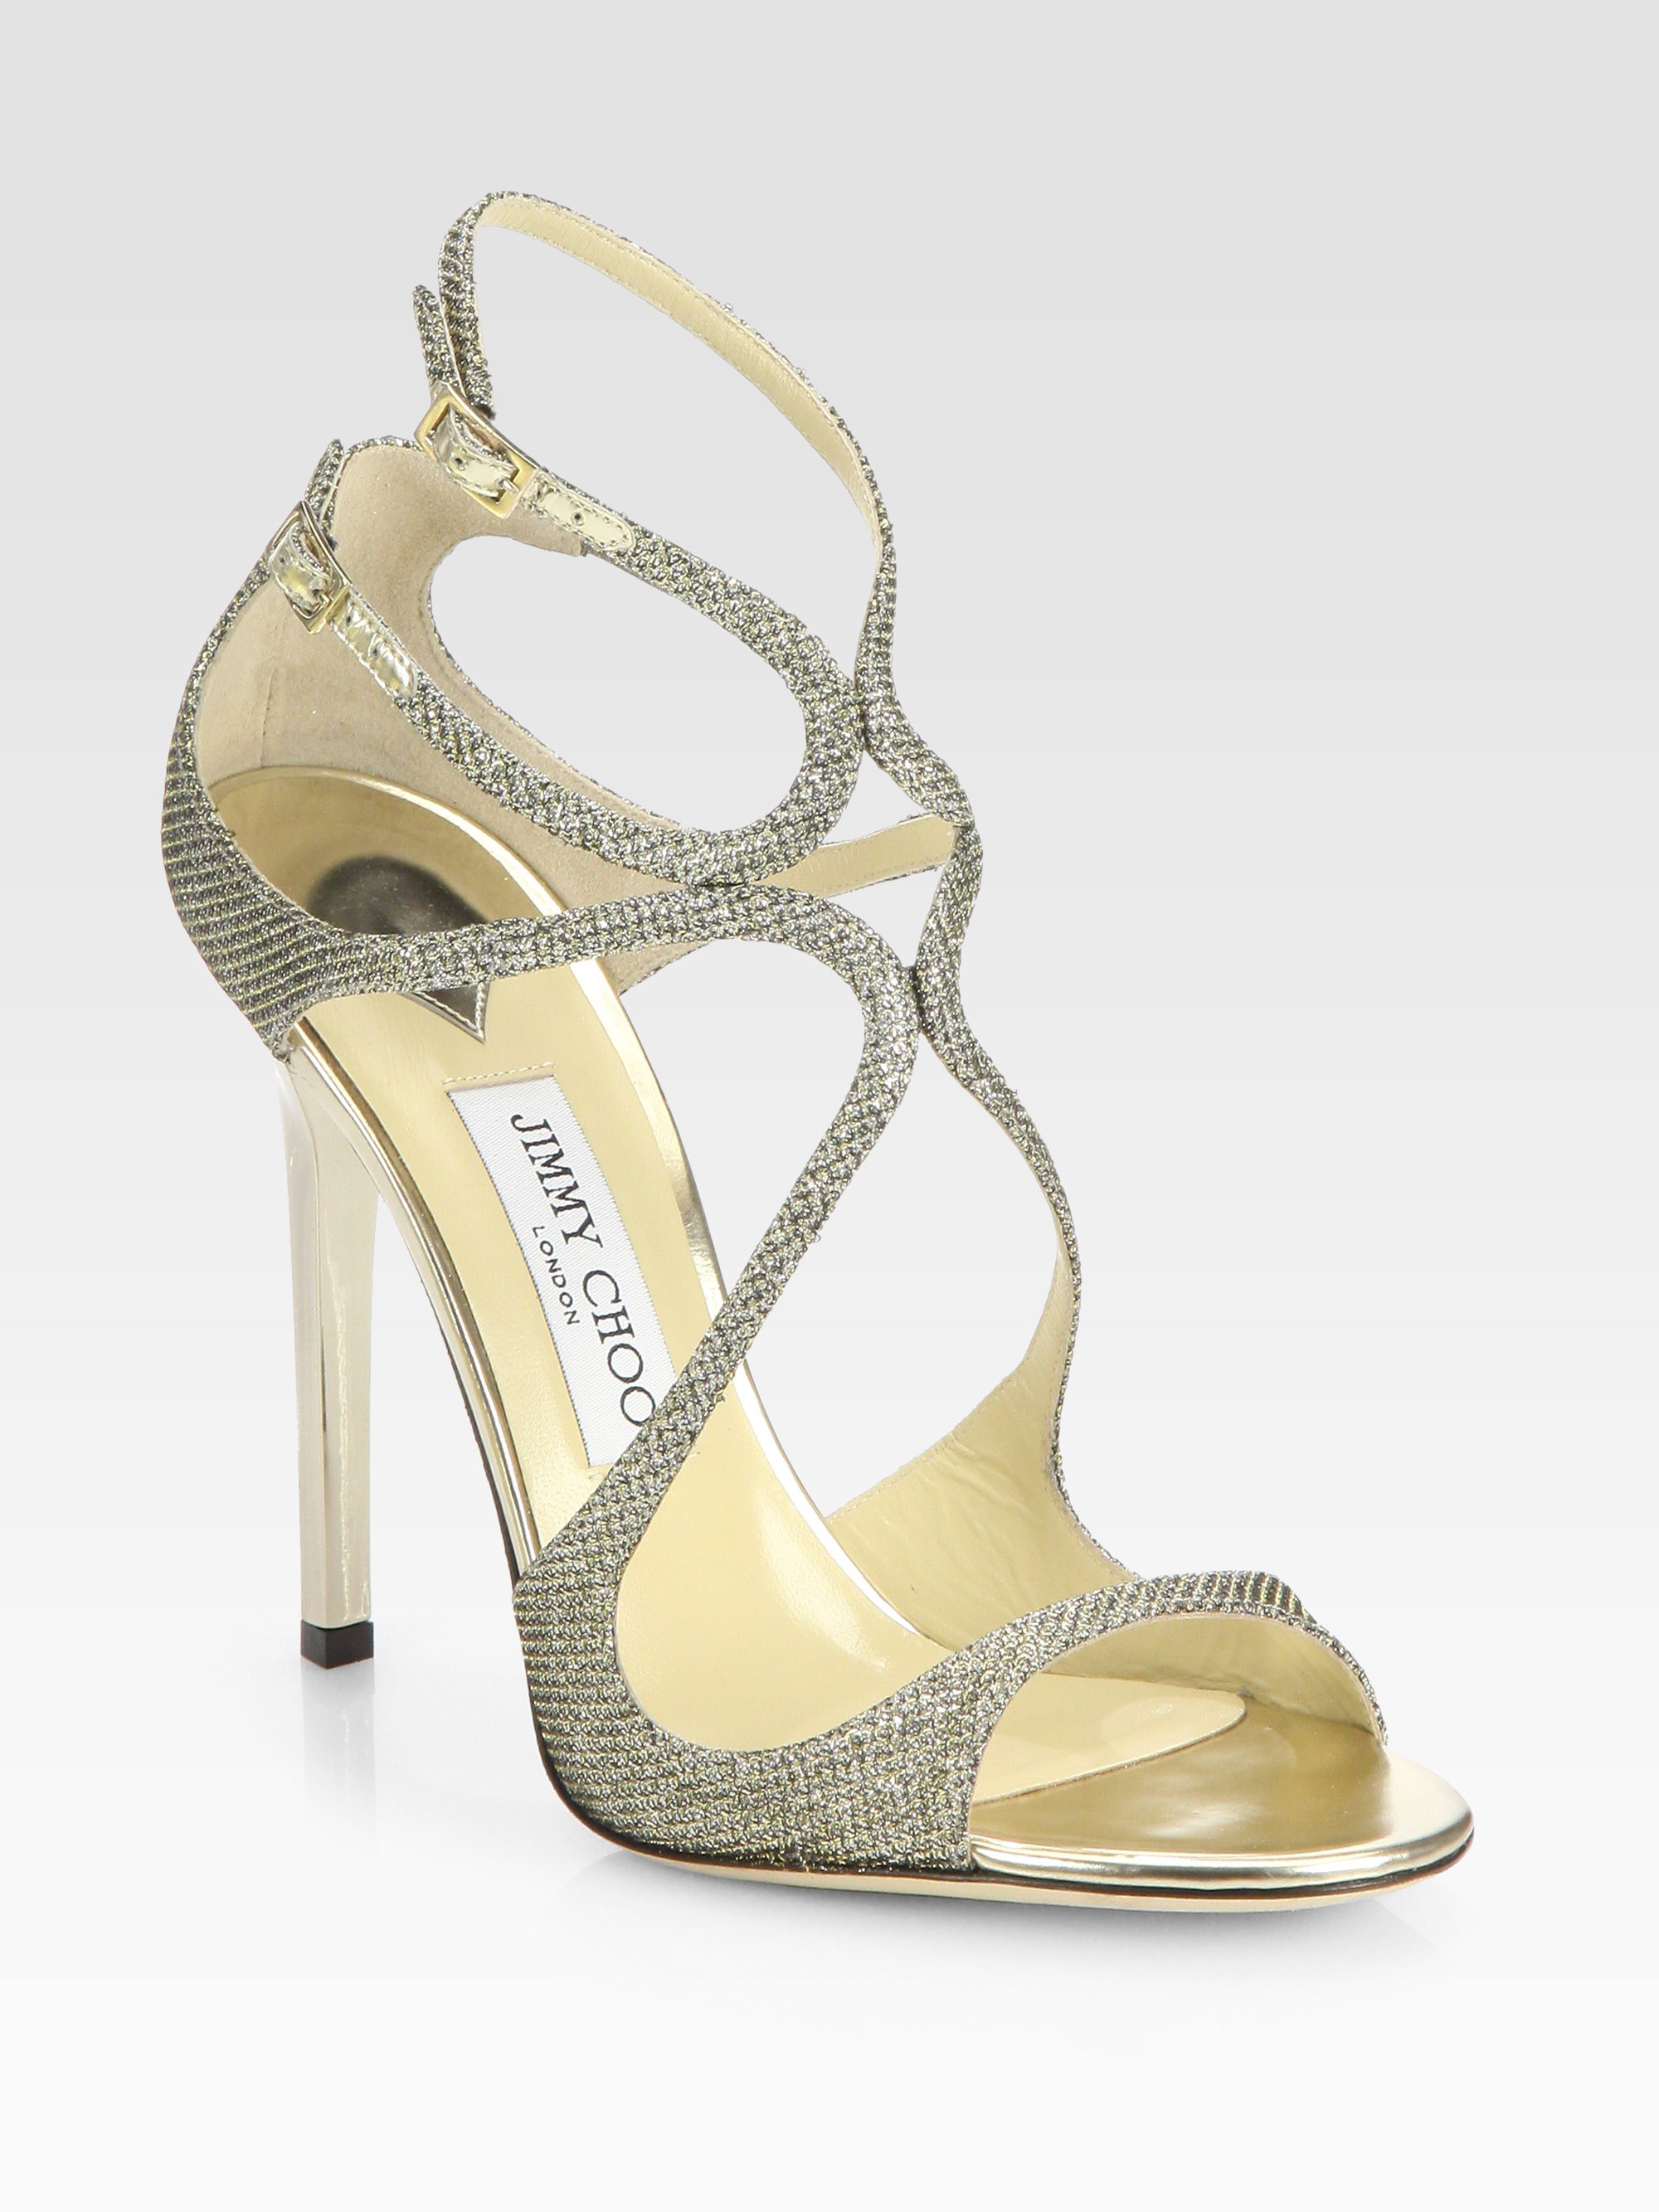 coupon code for jimmy choo glitter sandals 28543 fe5c8 rh forautoquotes com